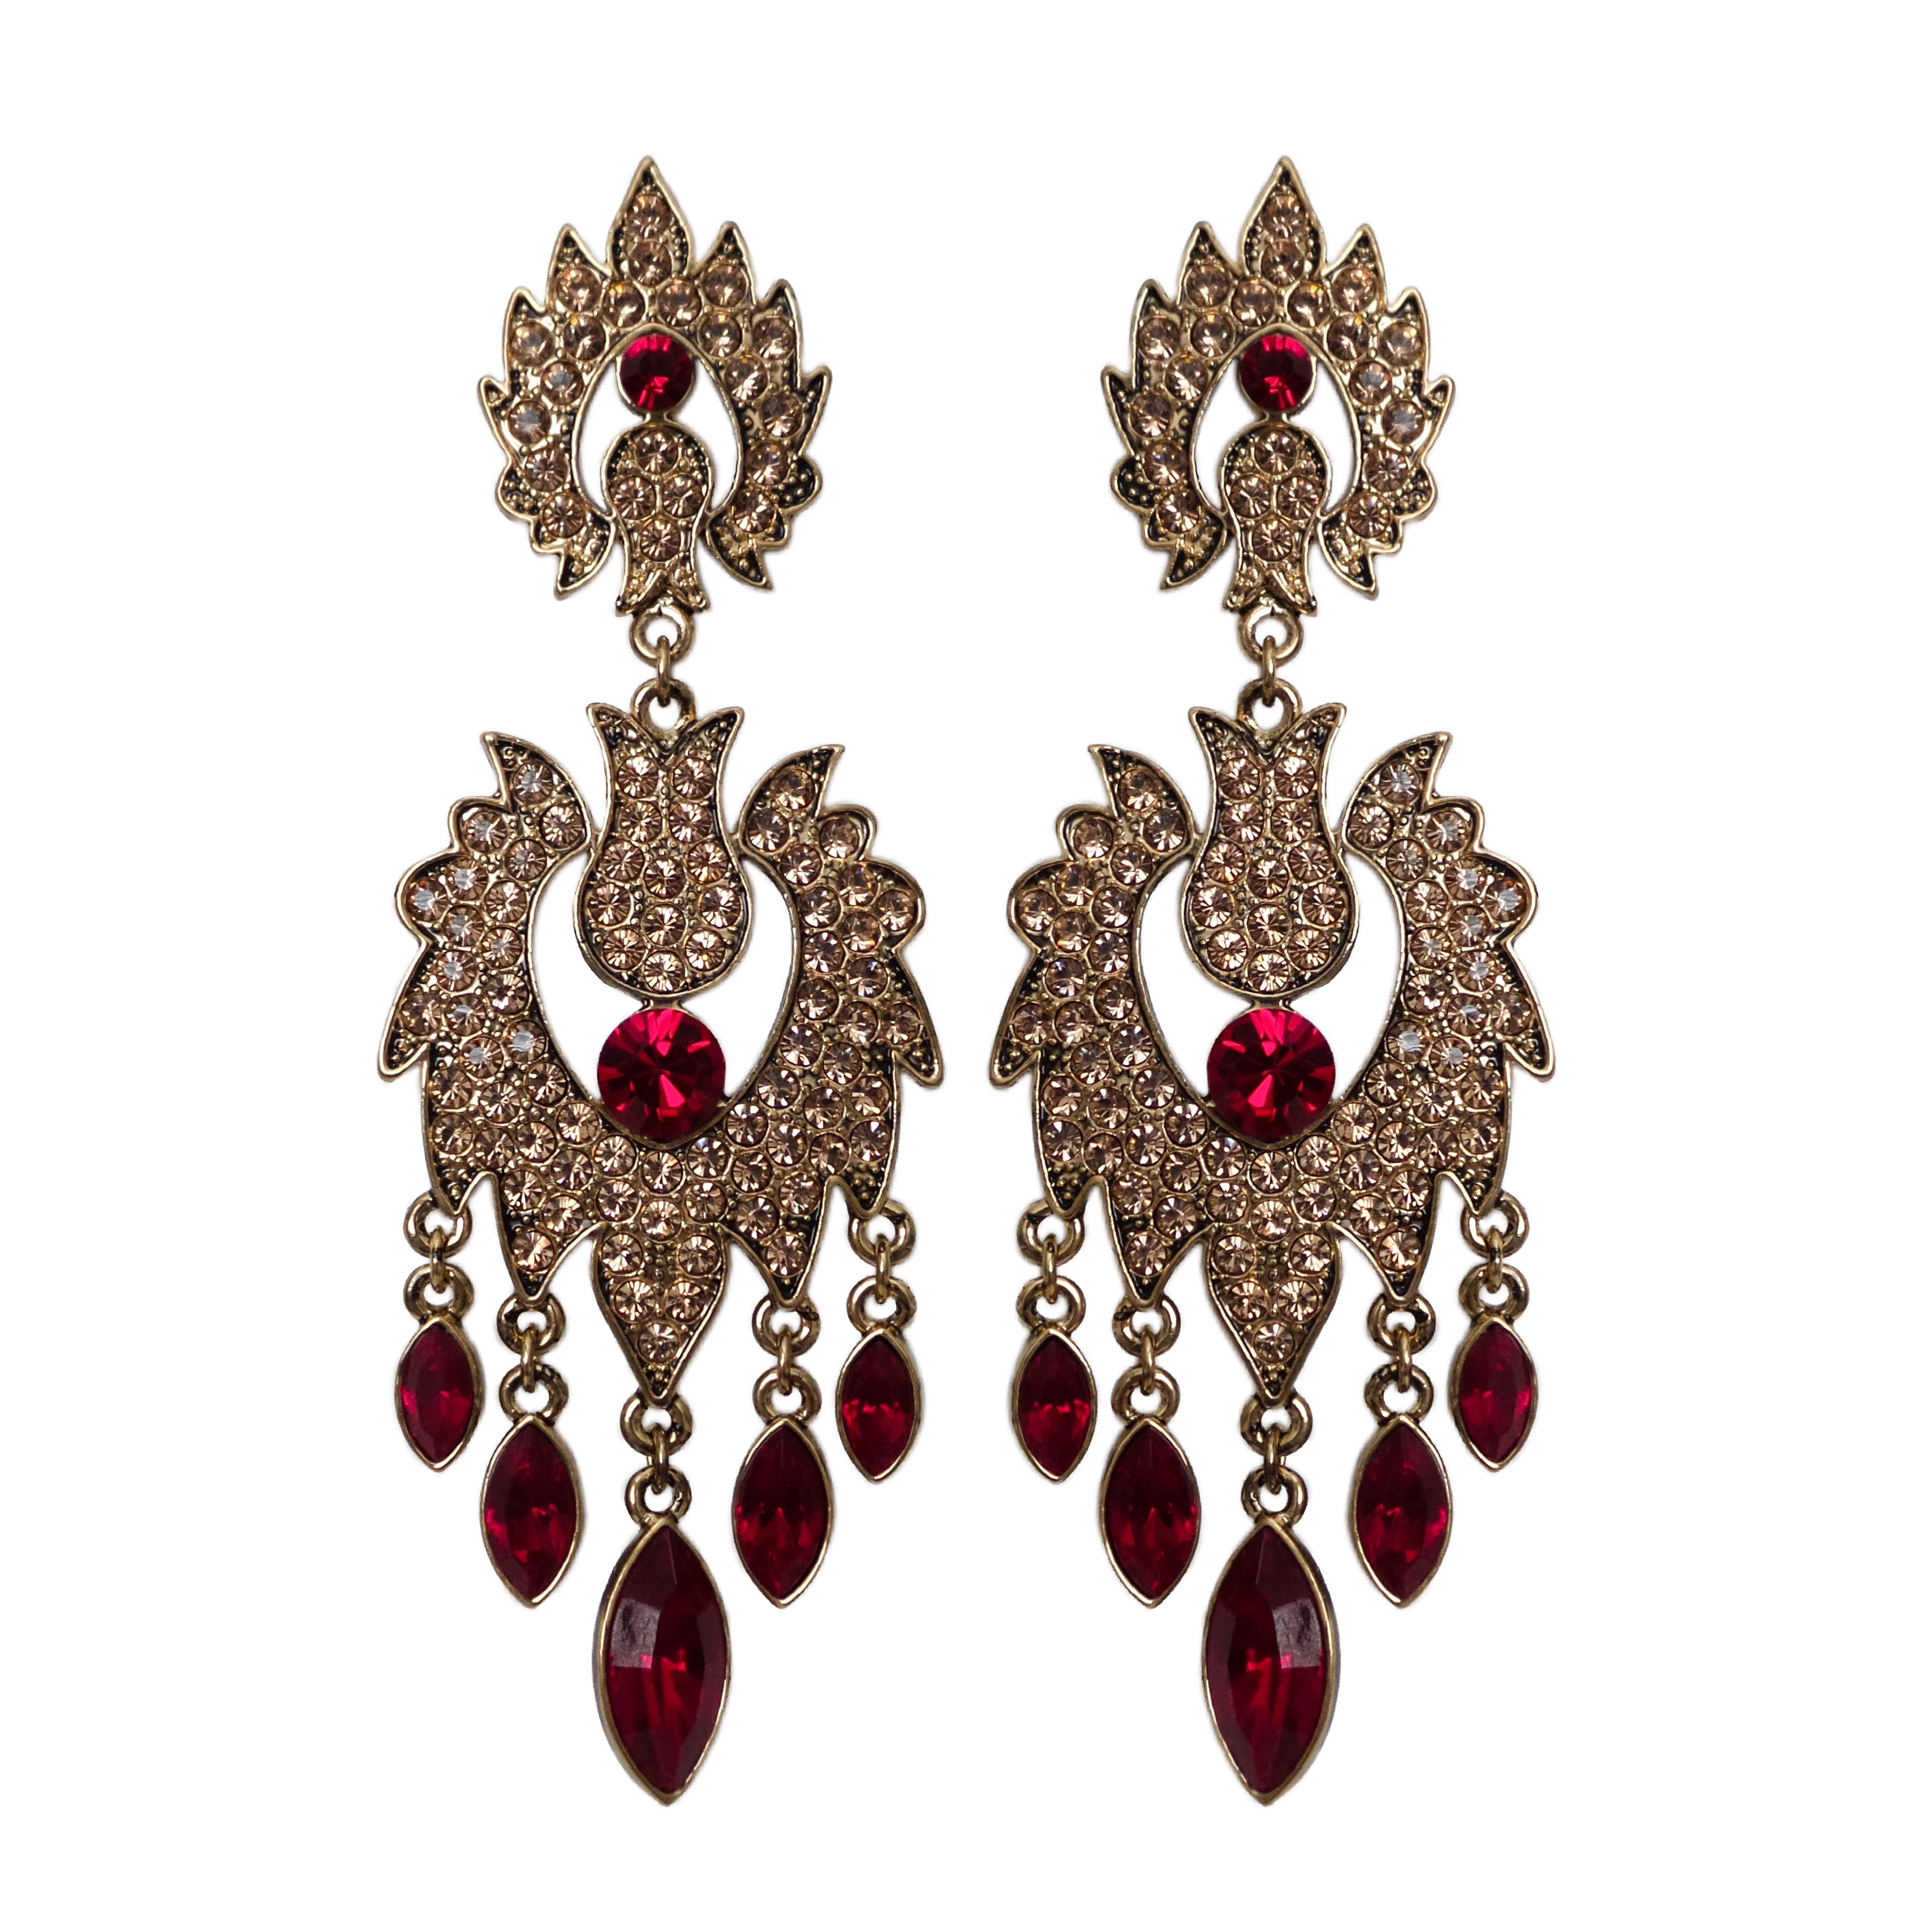 Earrings - ROSA/LCTSG